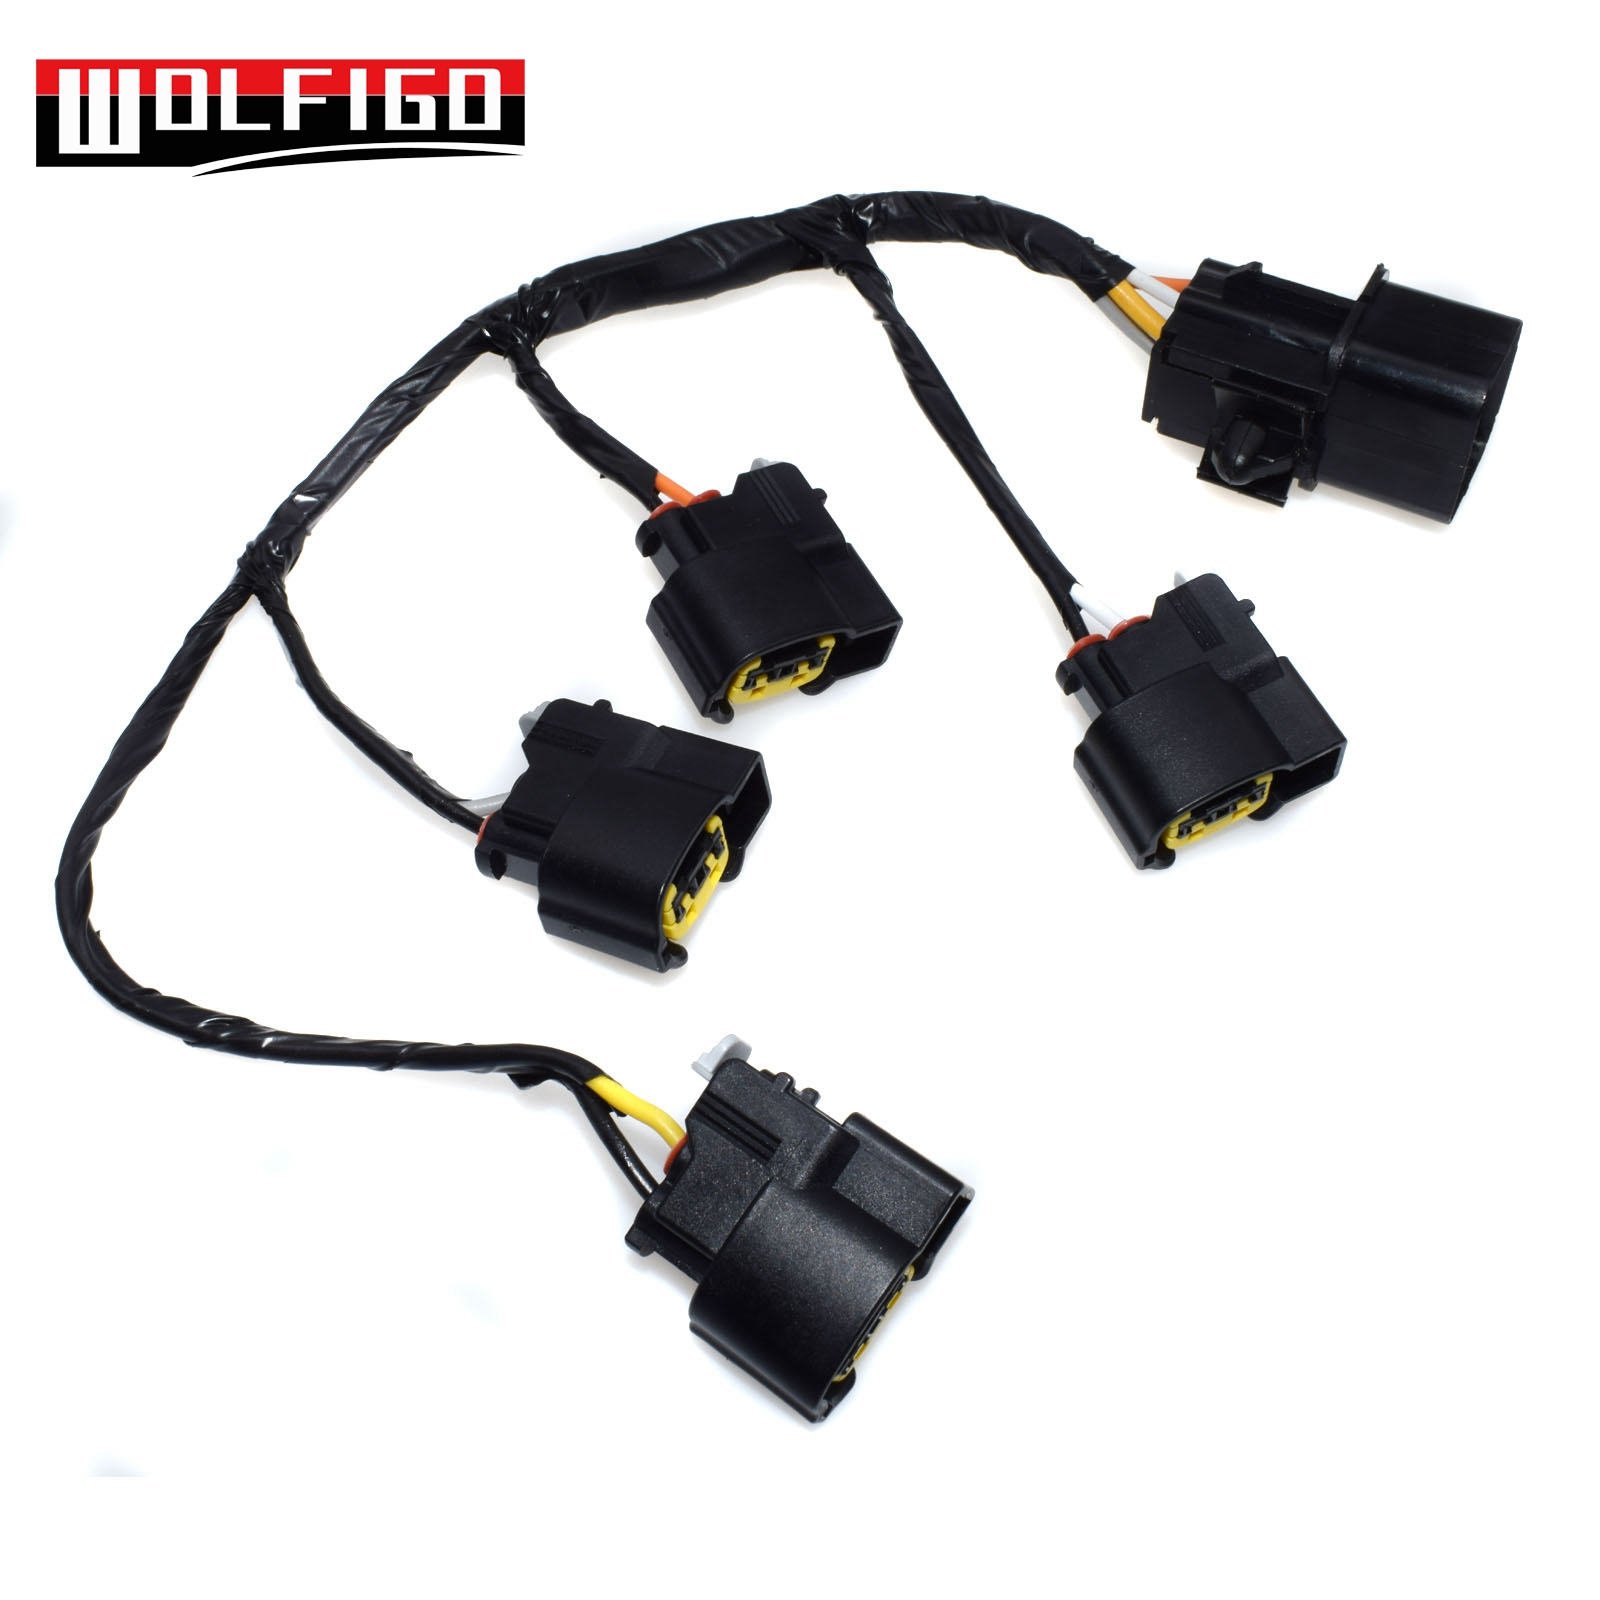 small resolution of wolfigo new ignition coil wire harness for hyundai kia veloster rio 1 6l 27350 2b000 27350 2b000 273502b000